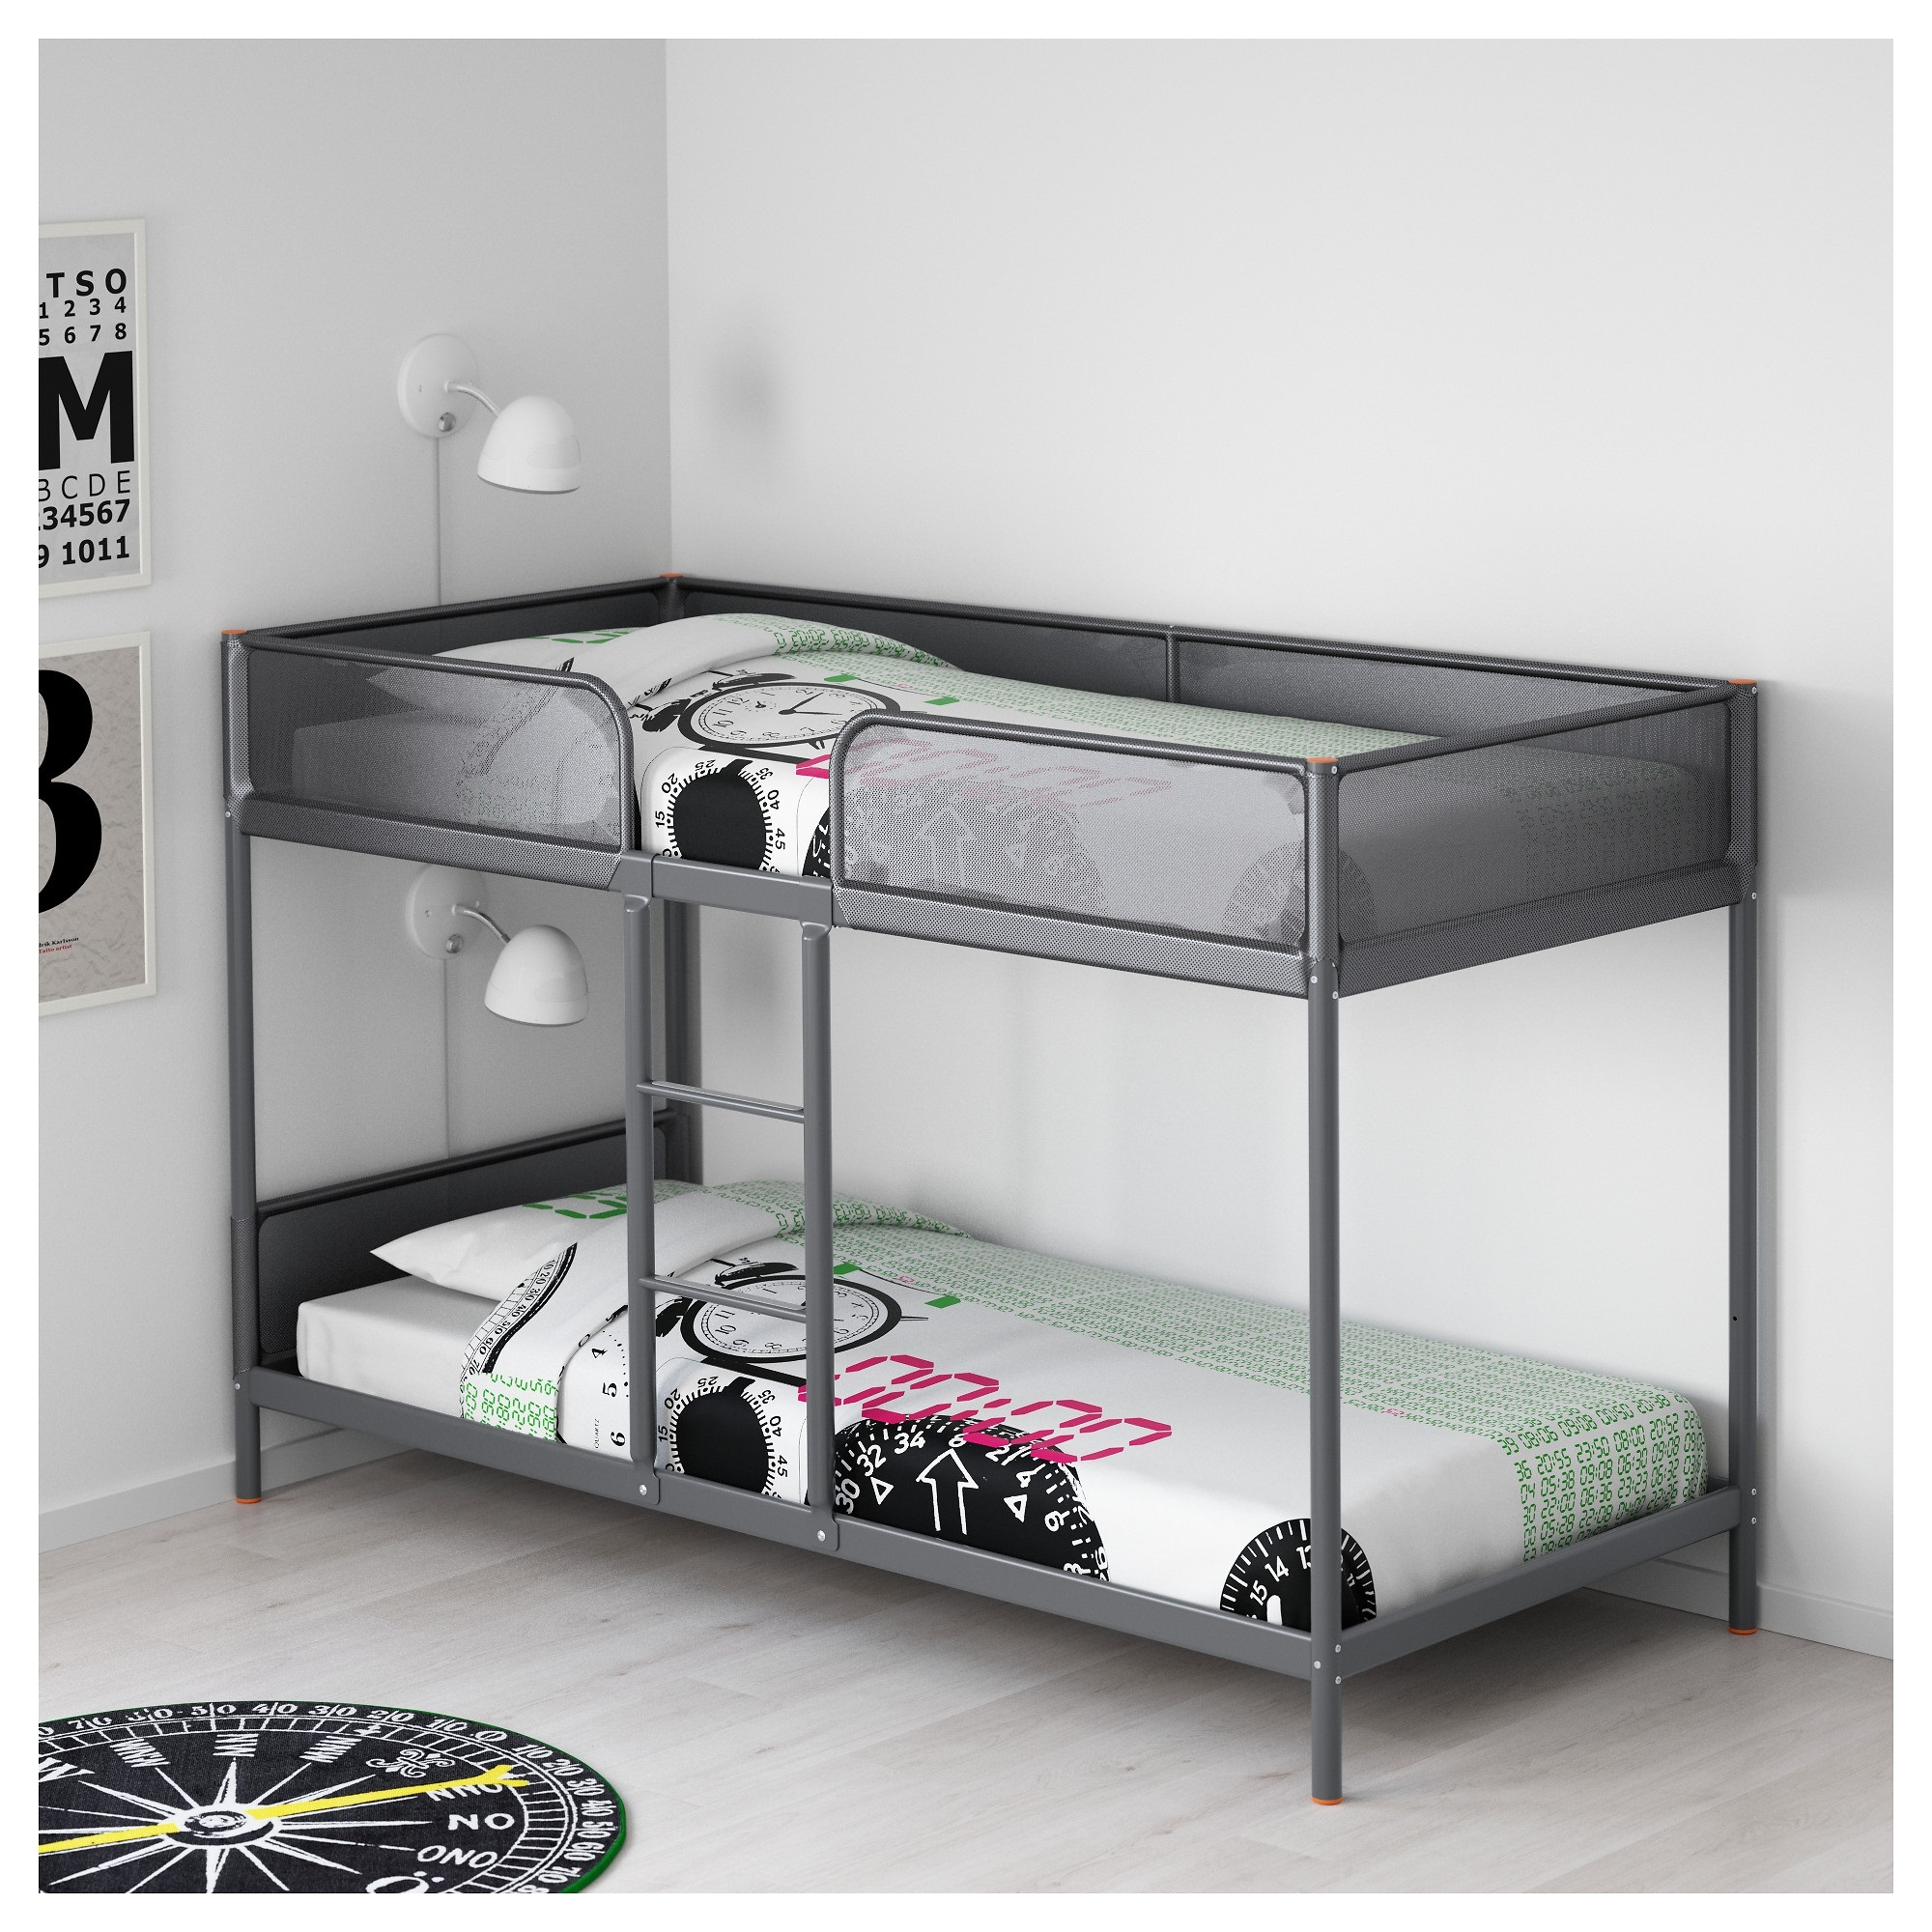 Bank Bed Ikea Ikea Bunk Beds - Visual Hunt